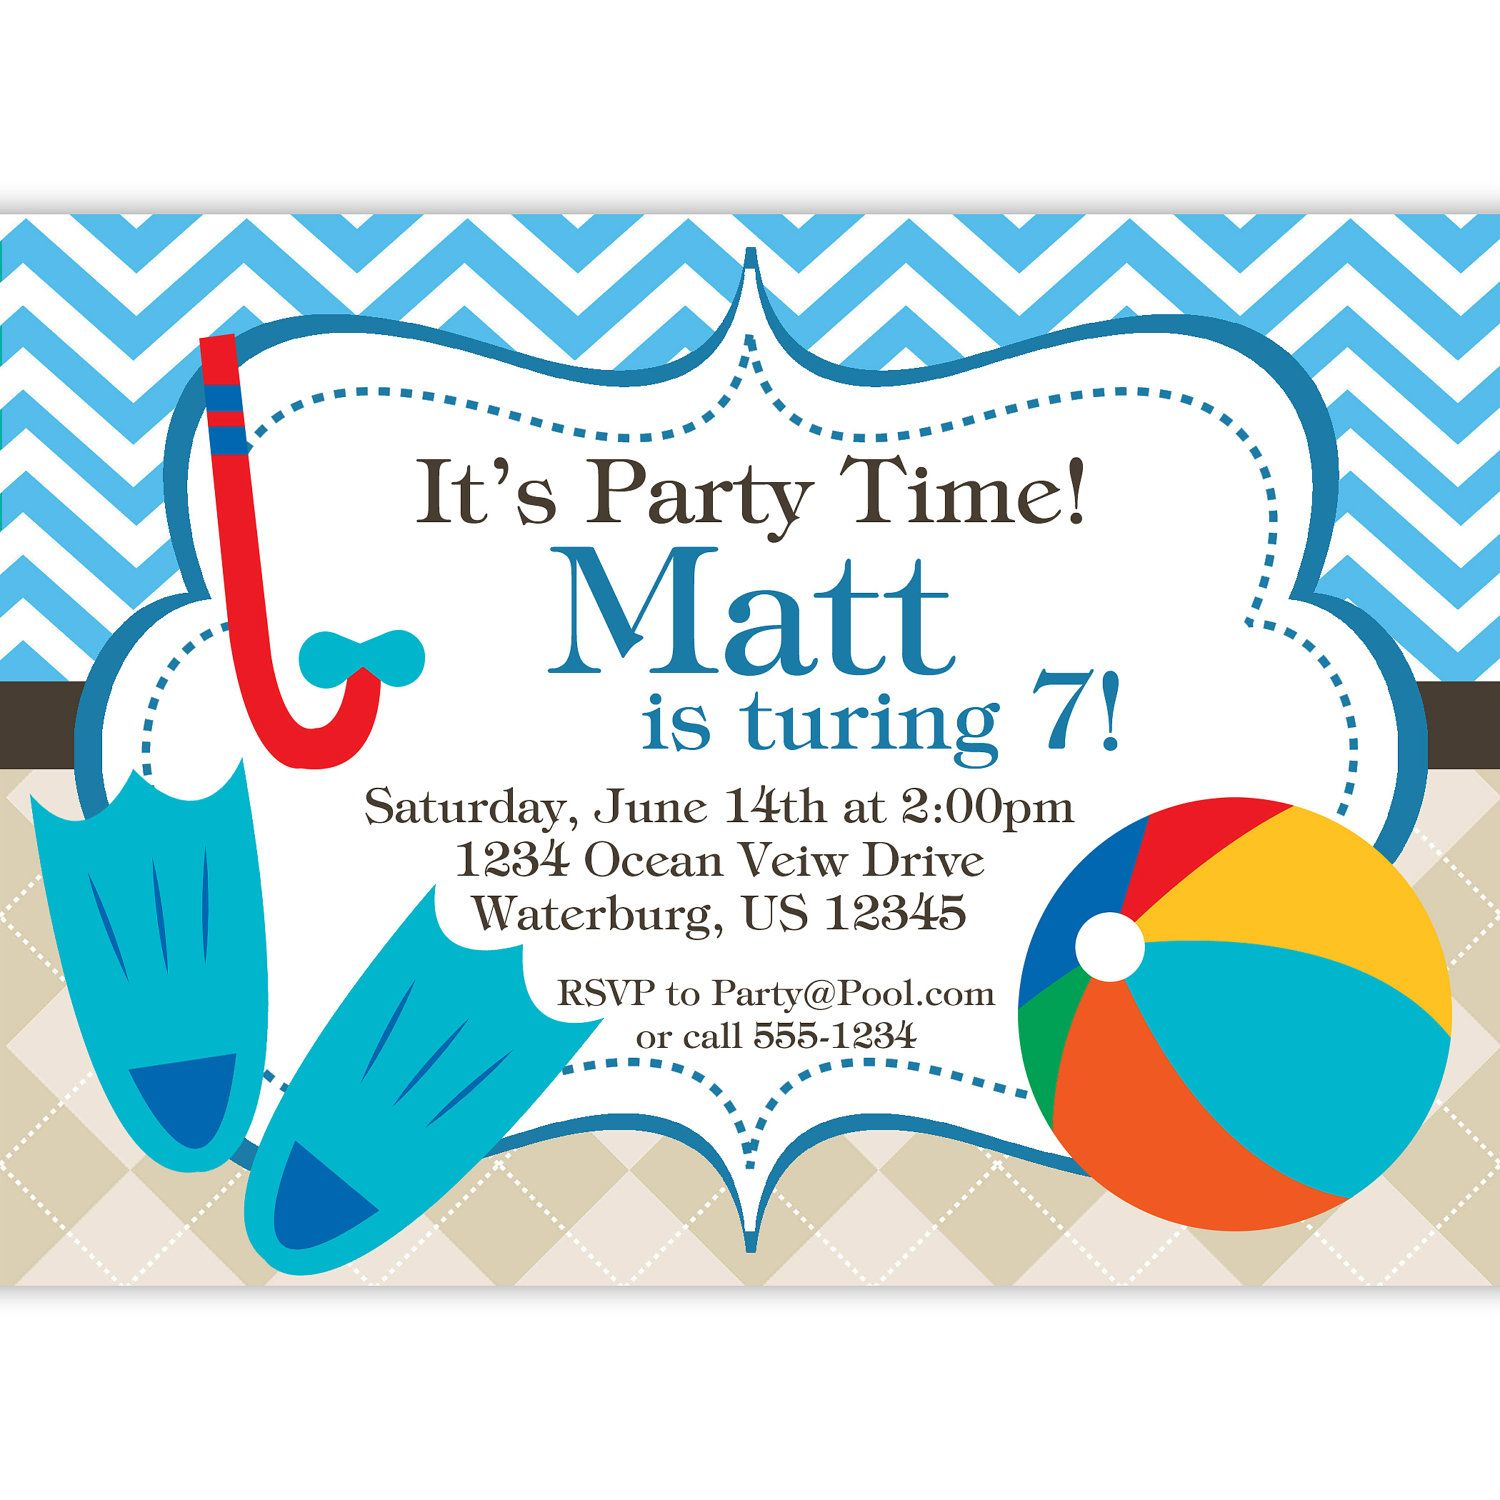 doc pool party printable invitations pool party pool invitation blue chevron and tan argyle beach ball pool party printable invitations